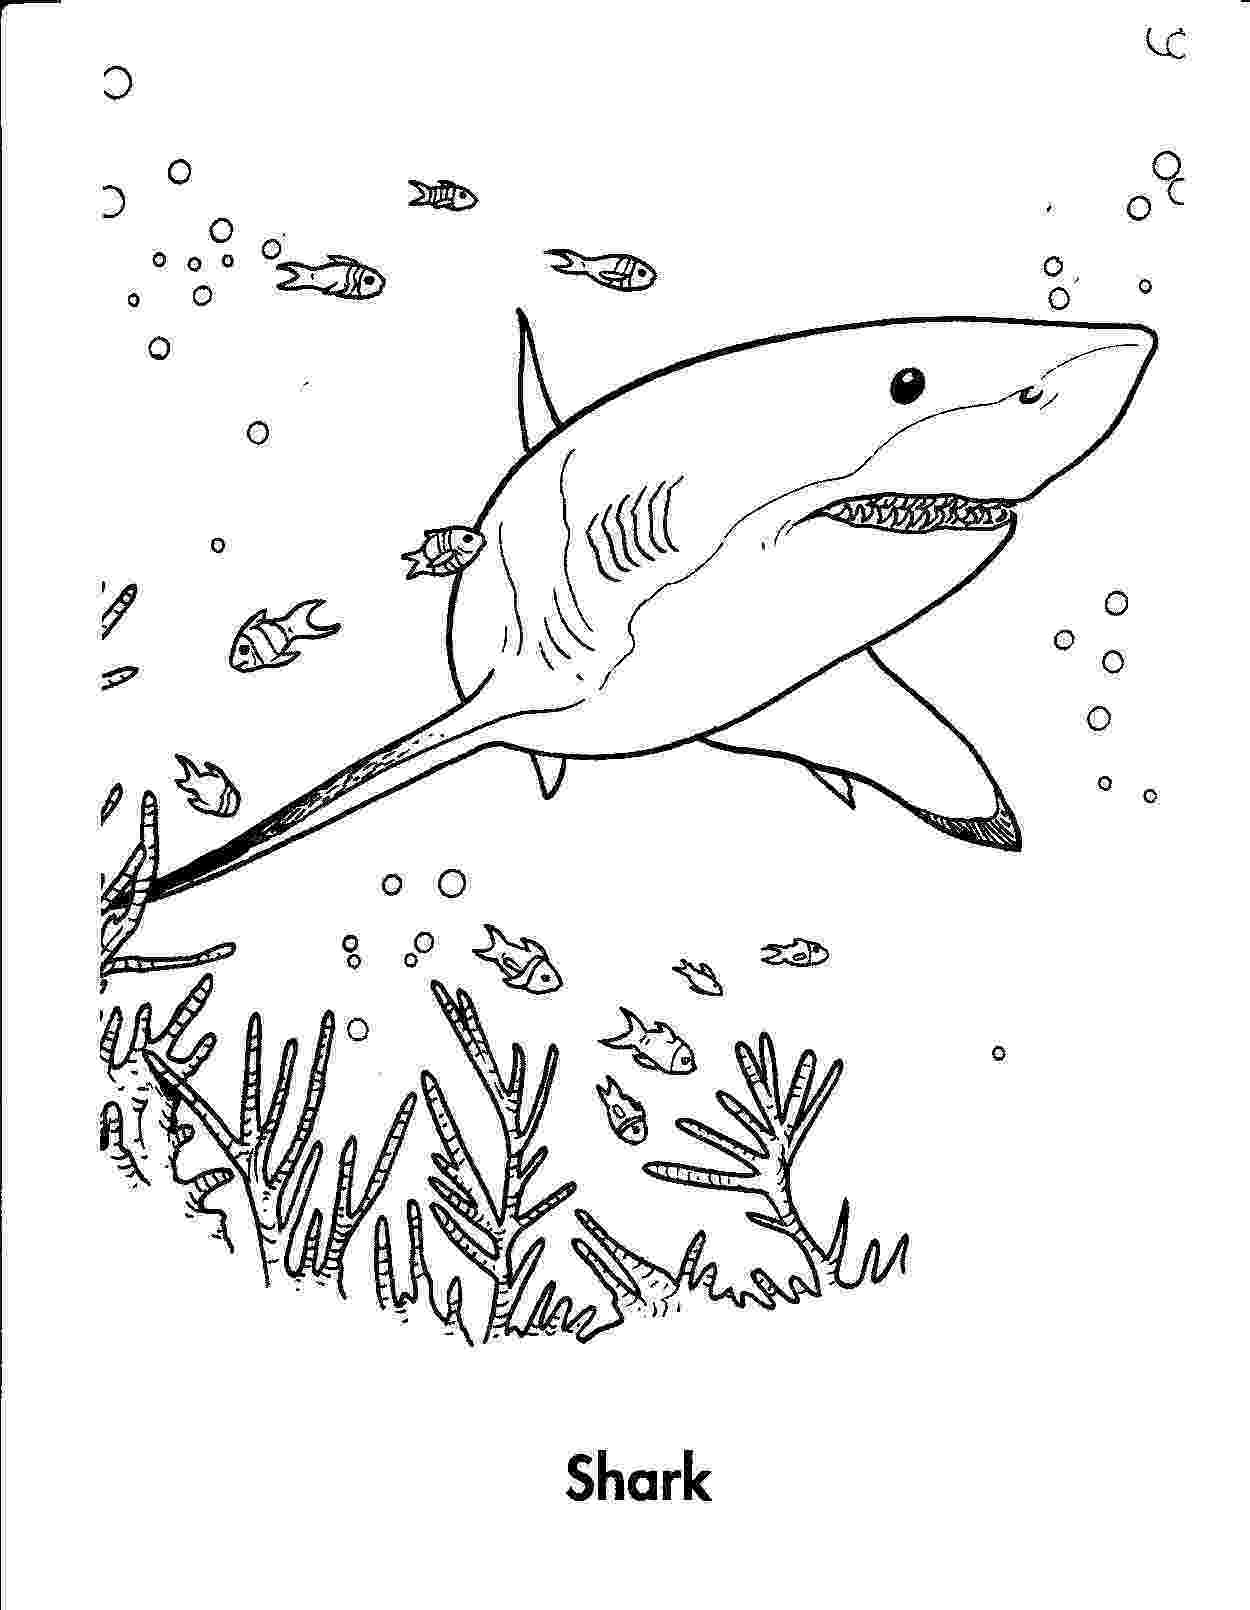 tiger shark coloring page coloring tiger shark picture shark things pinterest page shark coloring tiger